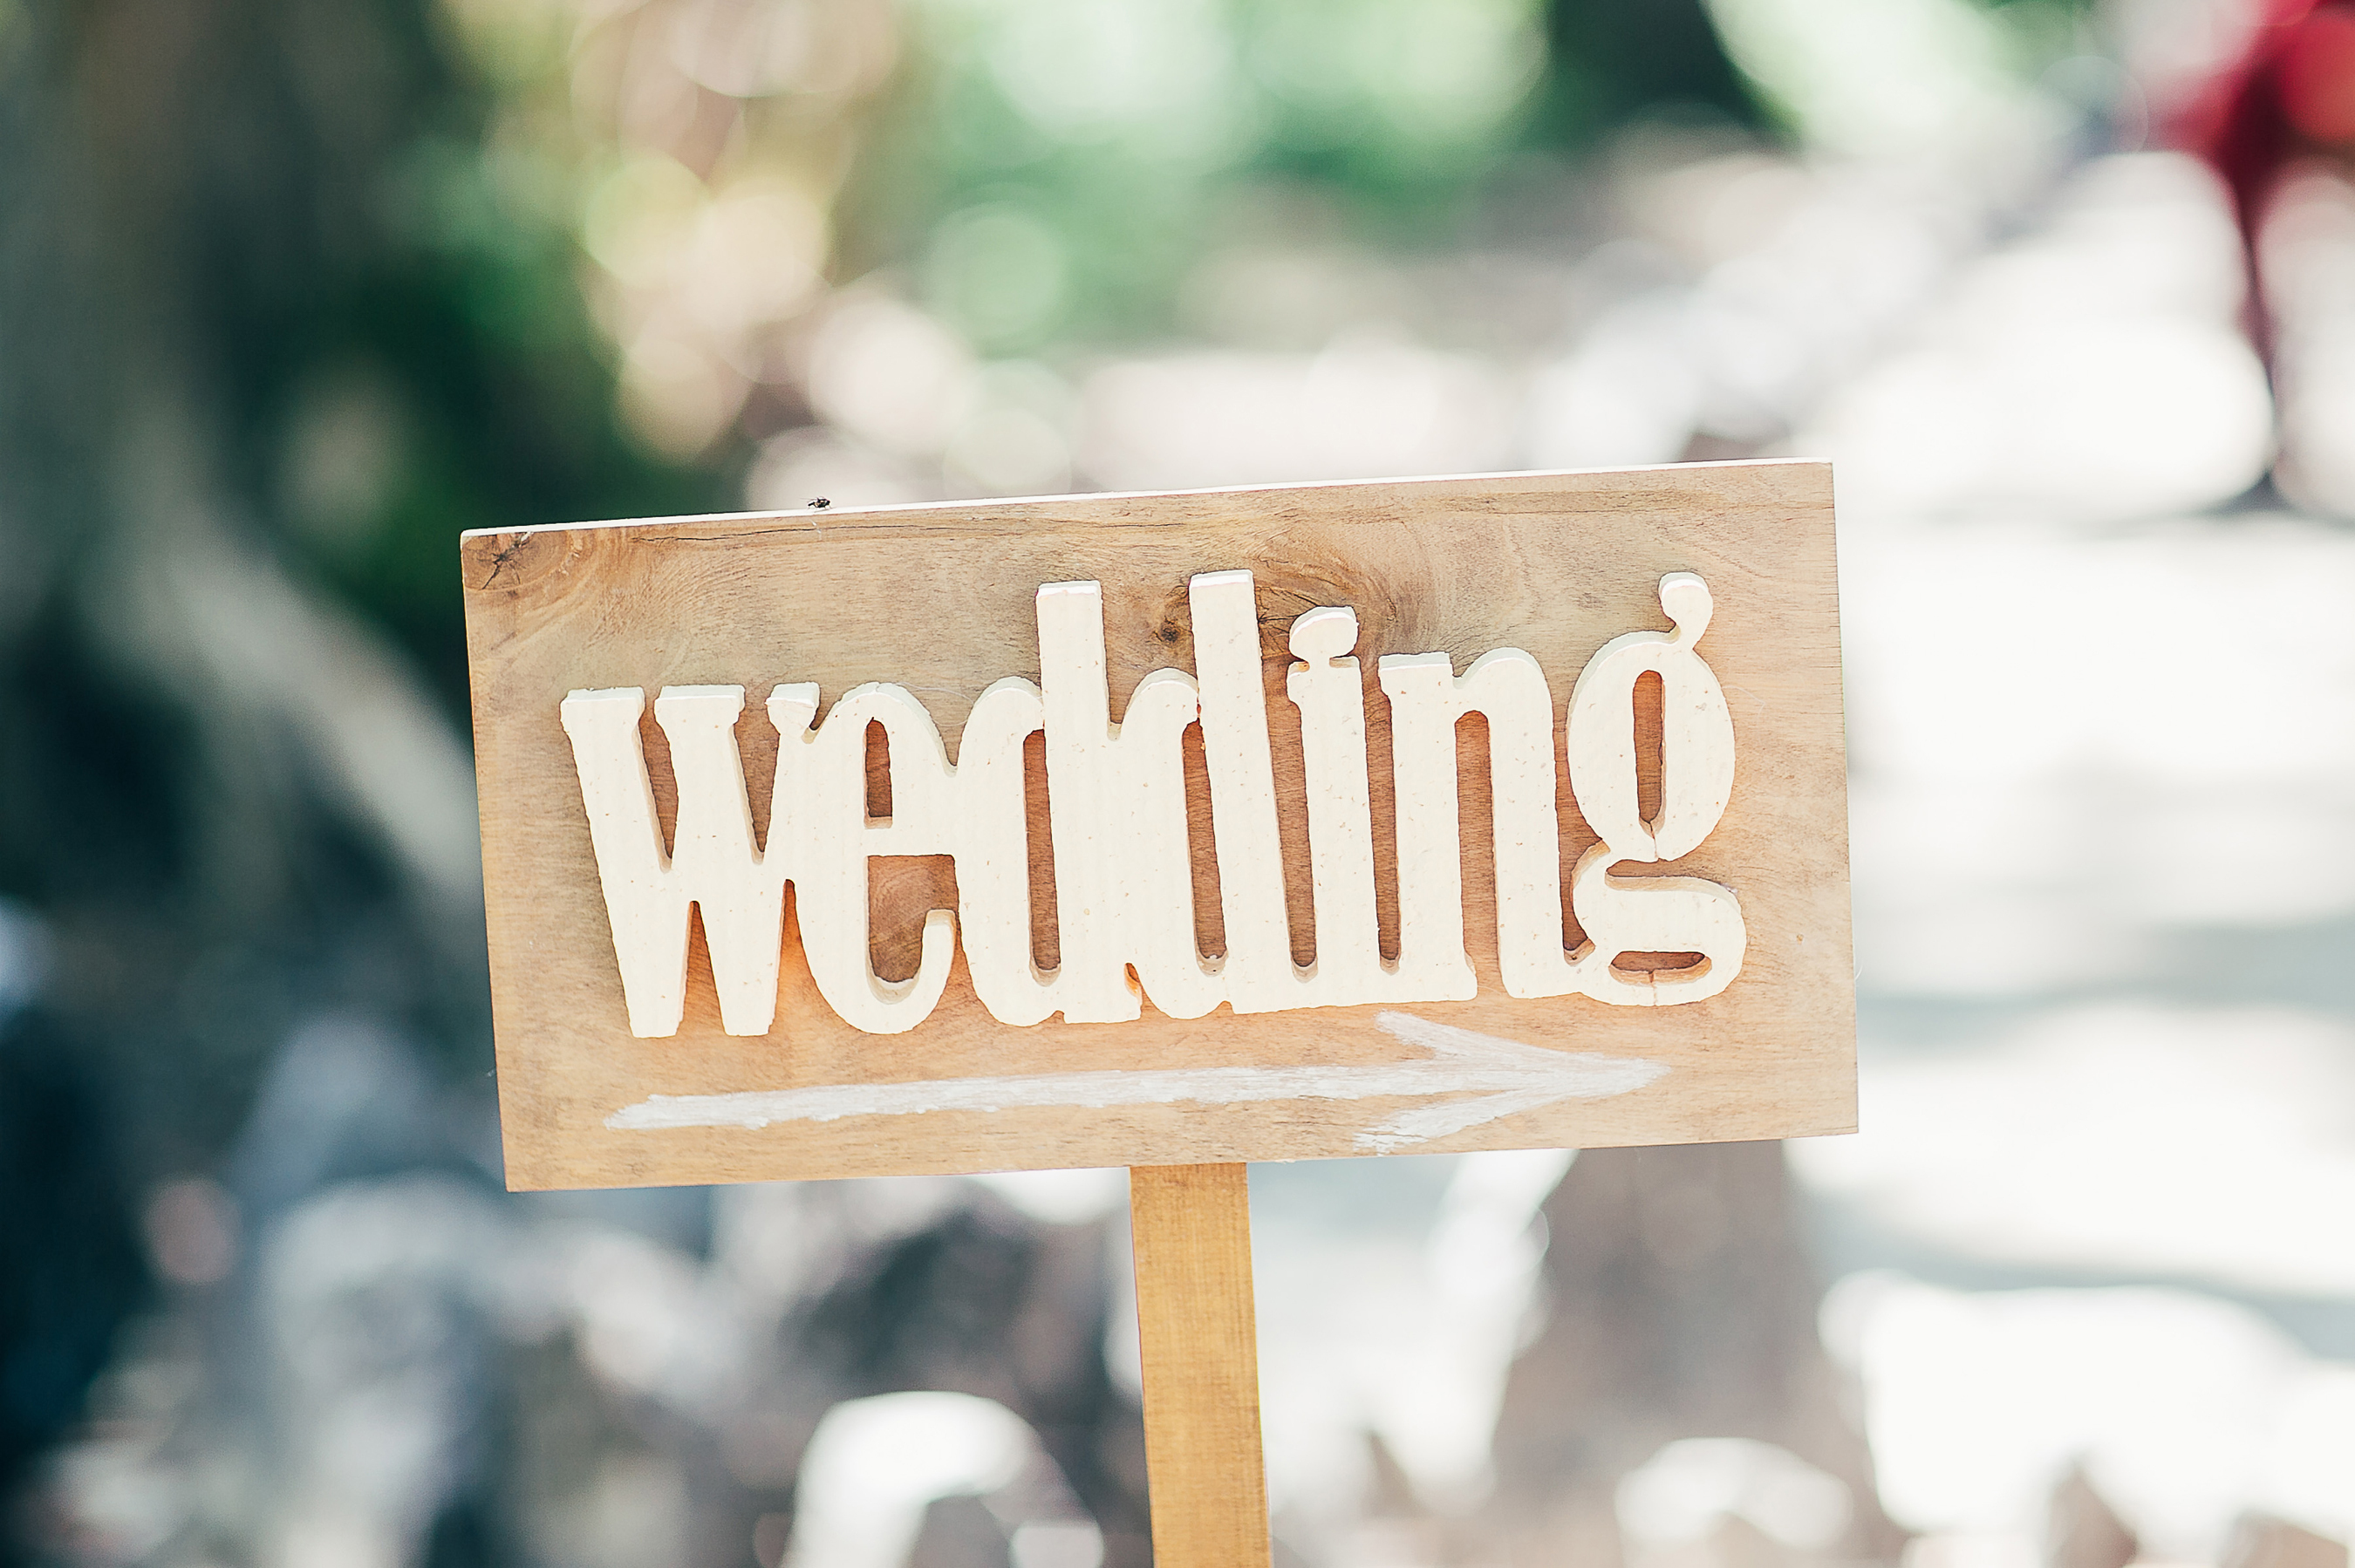 What to do if you have a wedding scheduled during Covid19 Outbreak